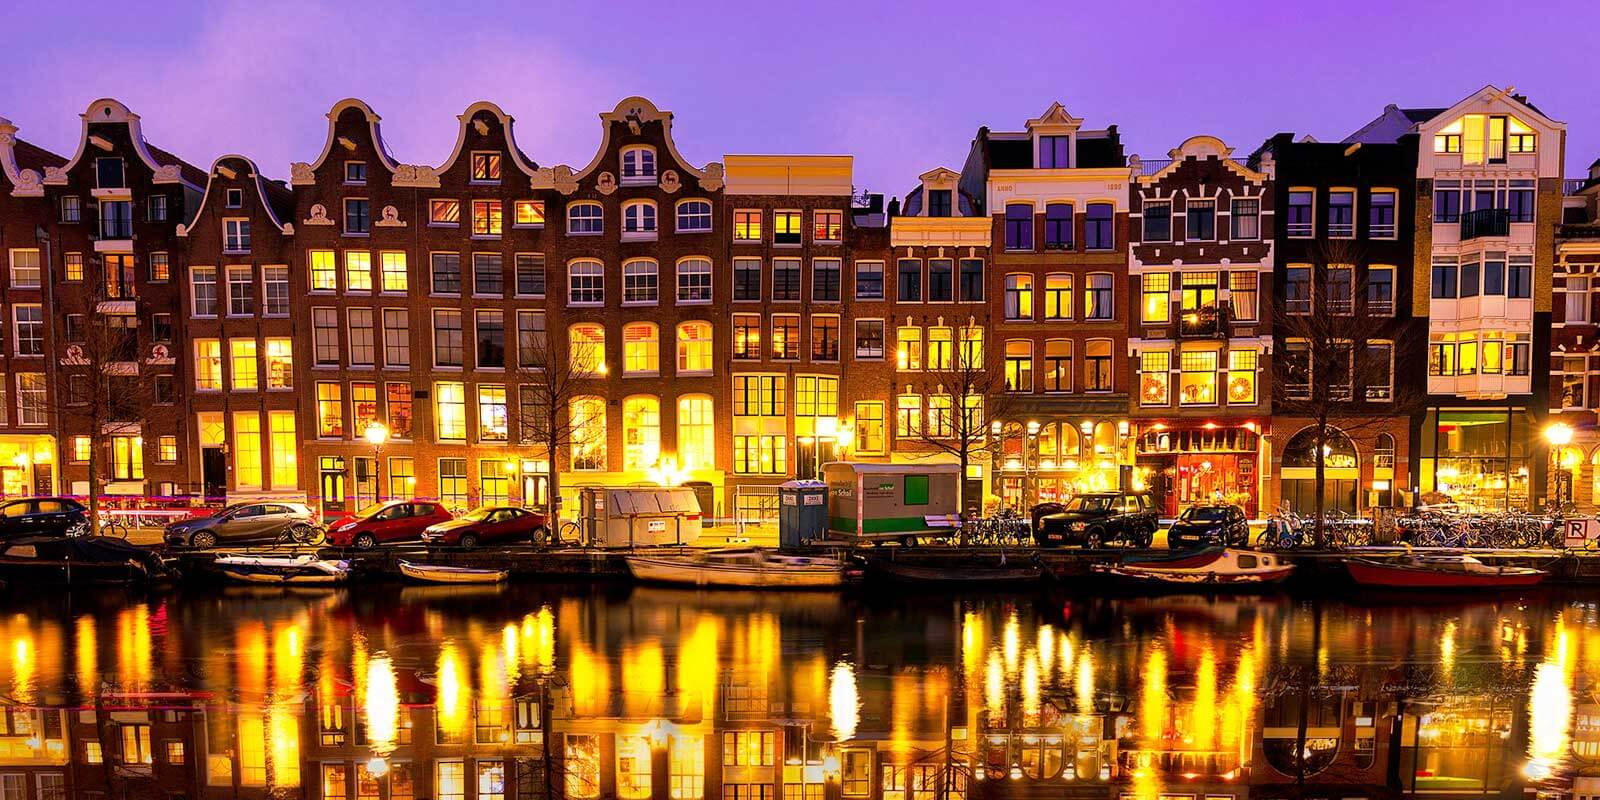 Stroll along the beautiful canals of Amsterdam in the Netherlands.